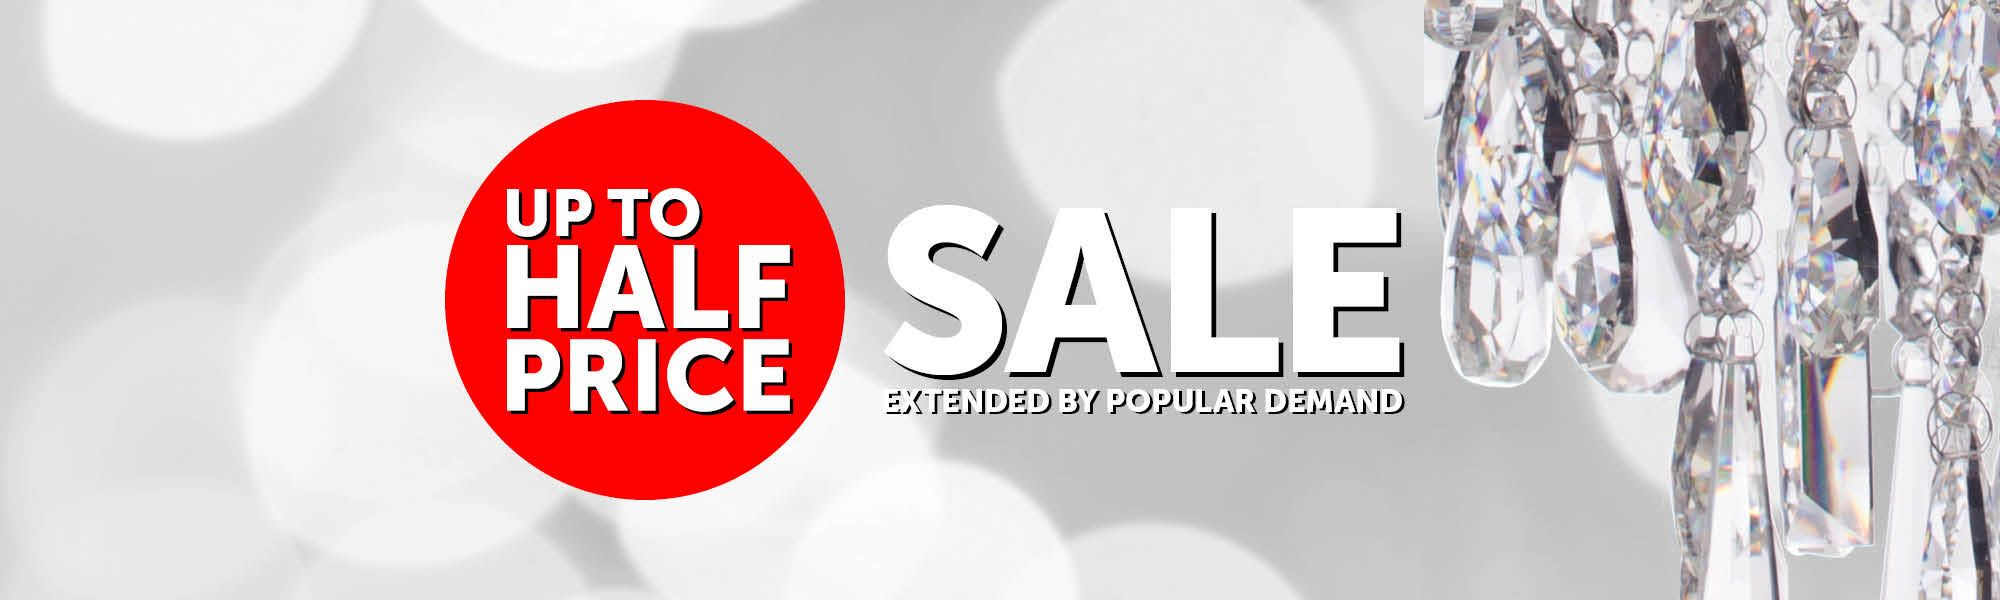 Sale extneded due to popular demand